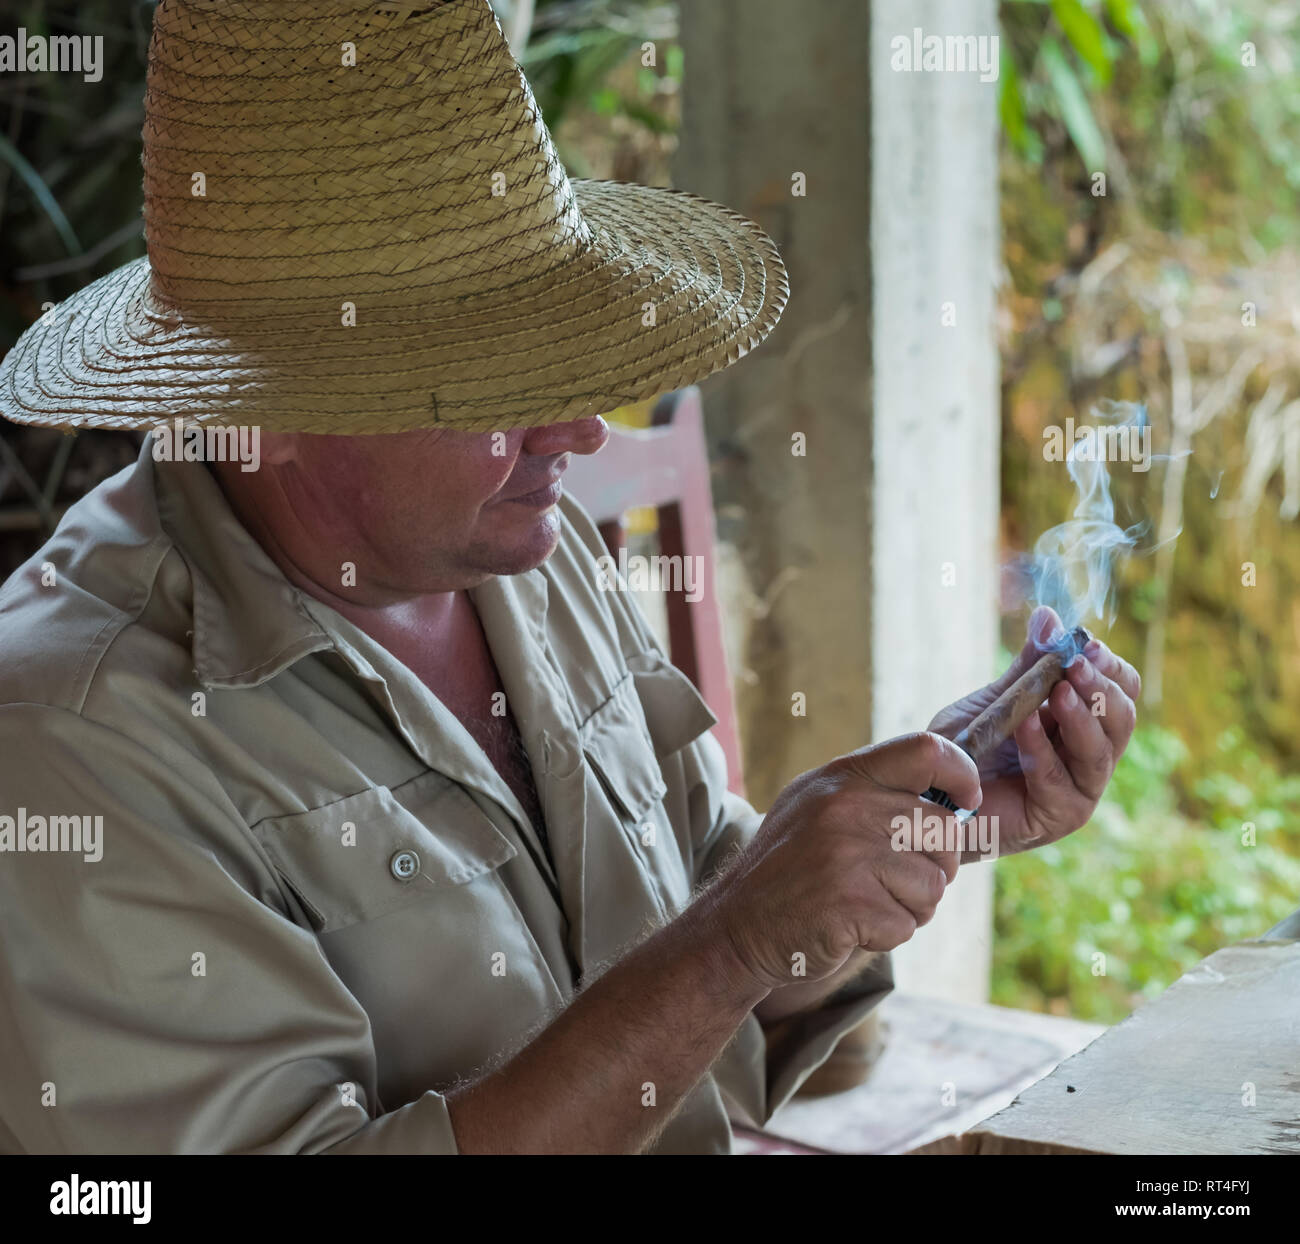 A tobacco grower inspects a lit cigar in Viñales Cuba. - Stock Image